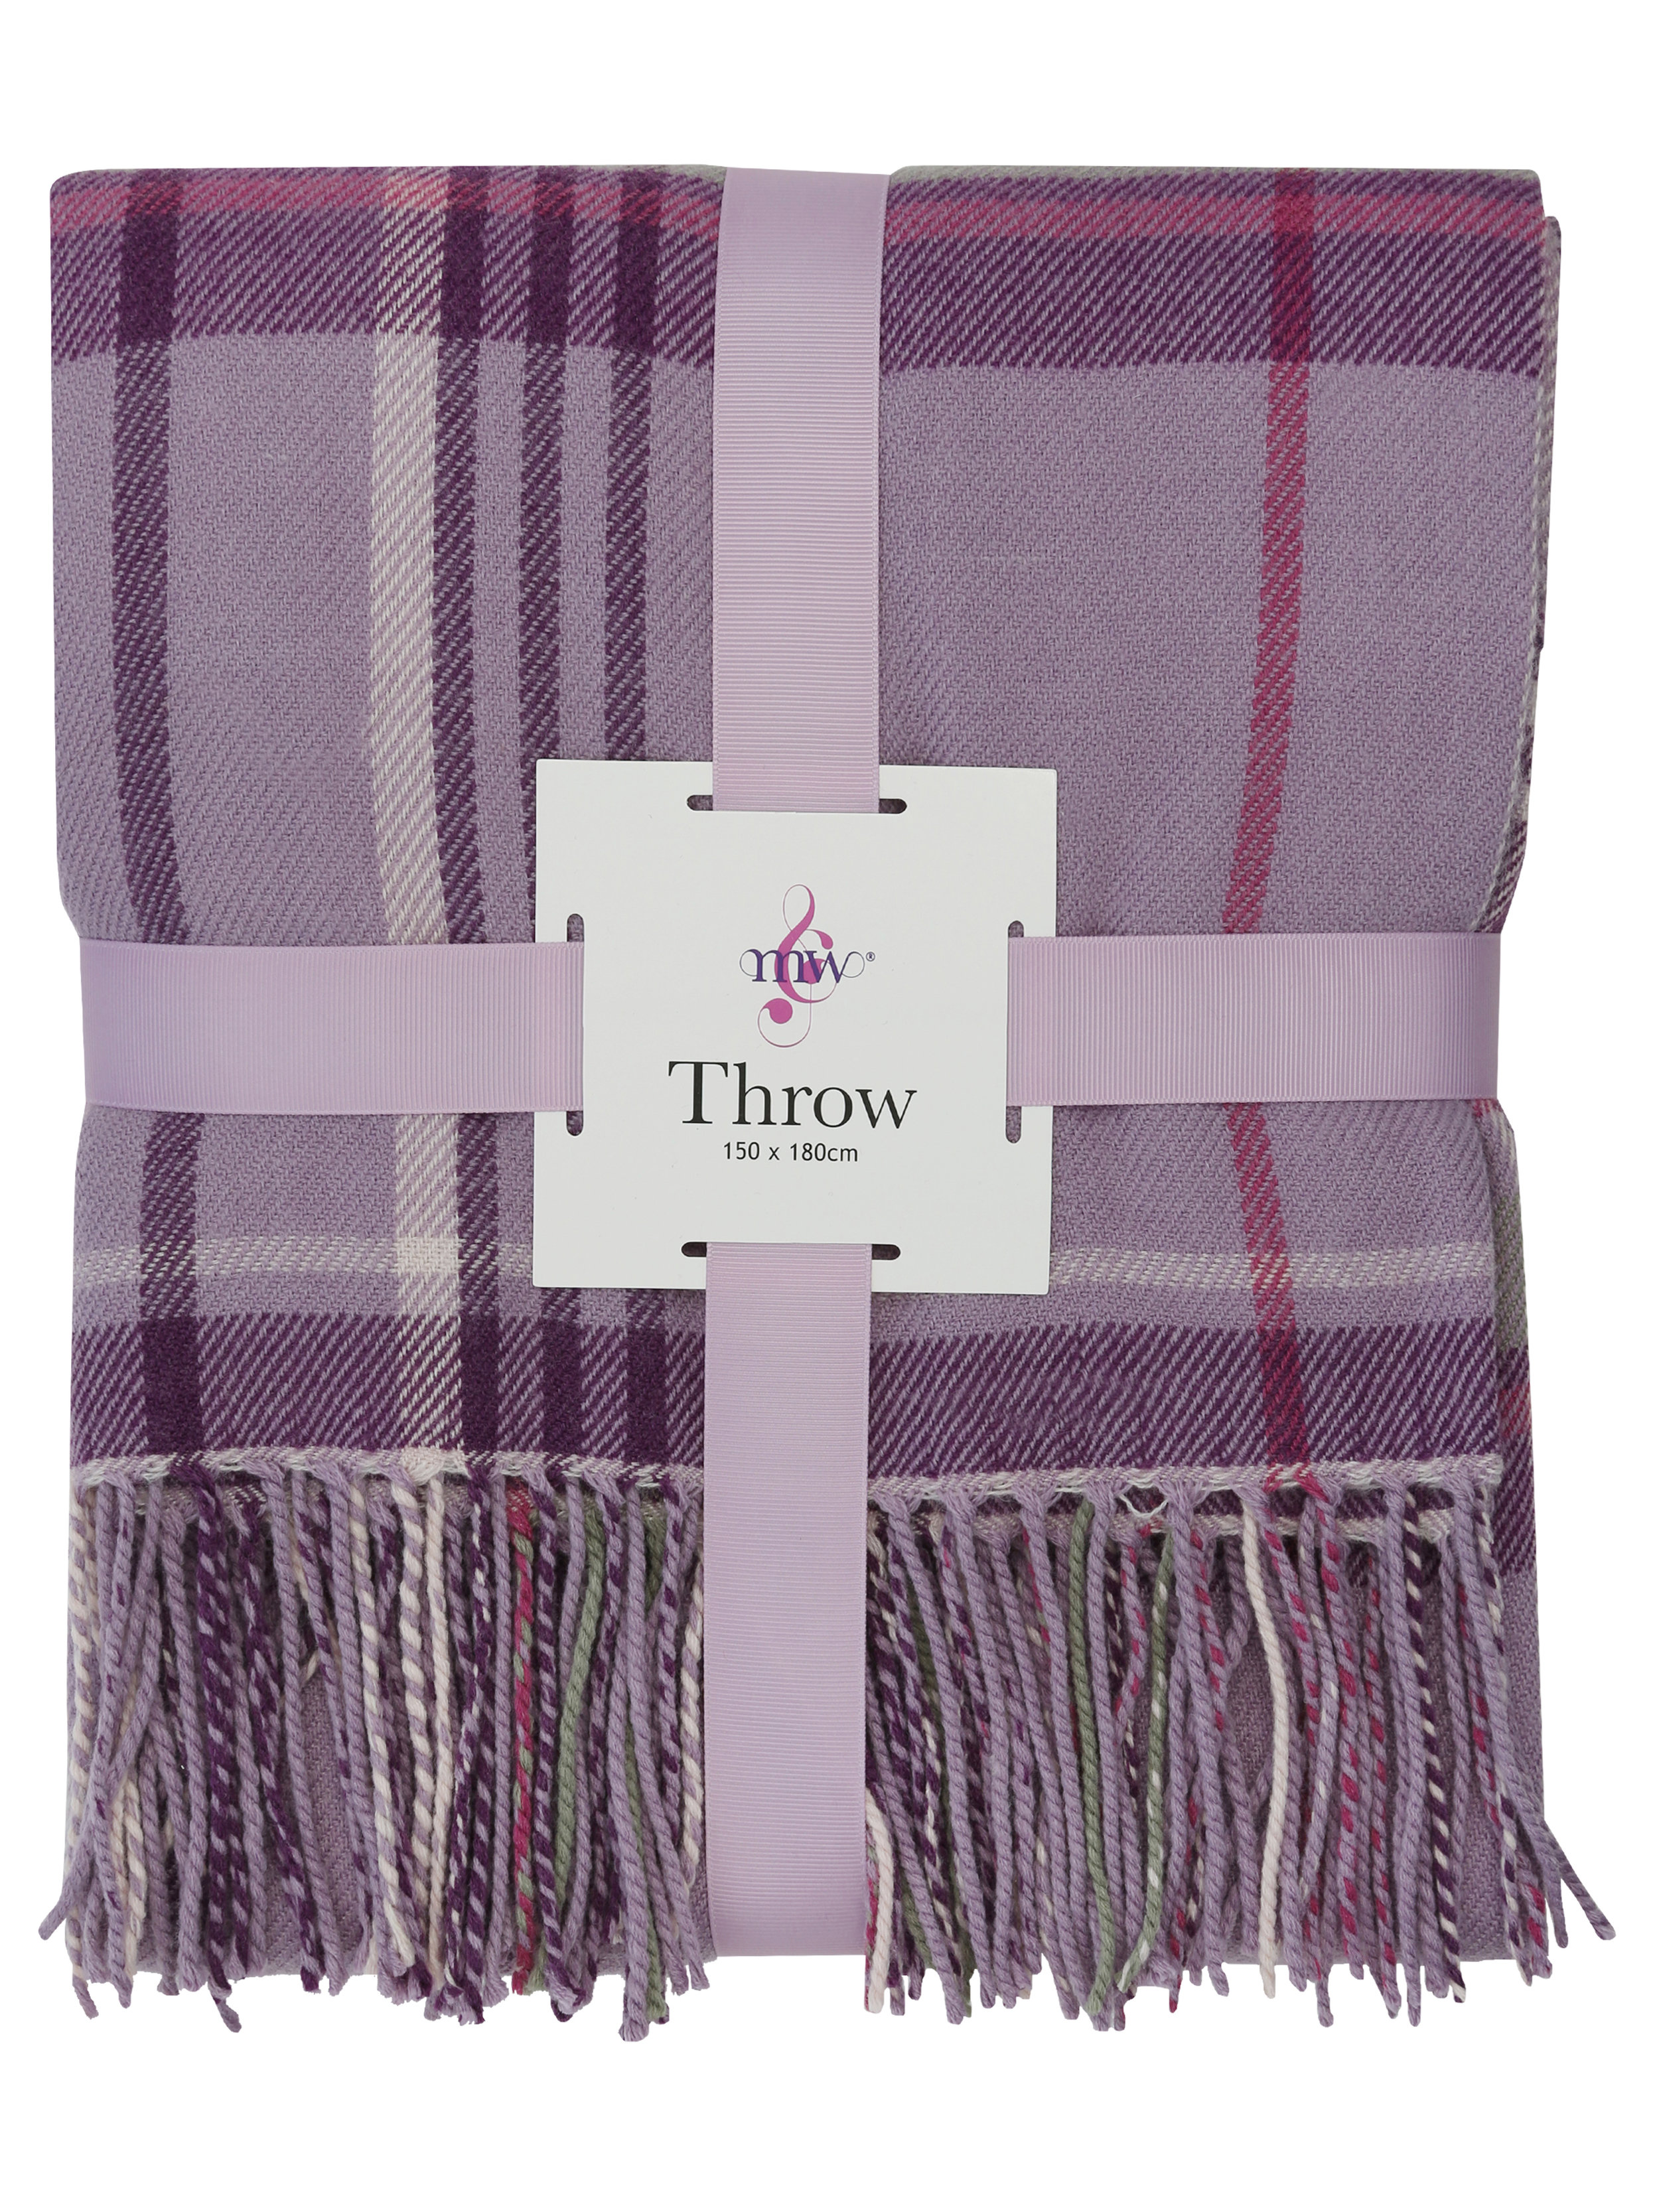 Cosy throw, £20